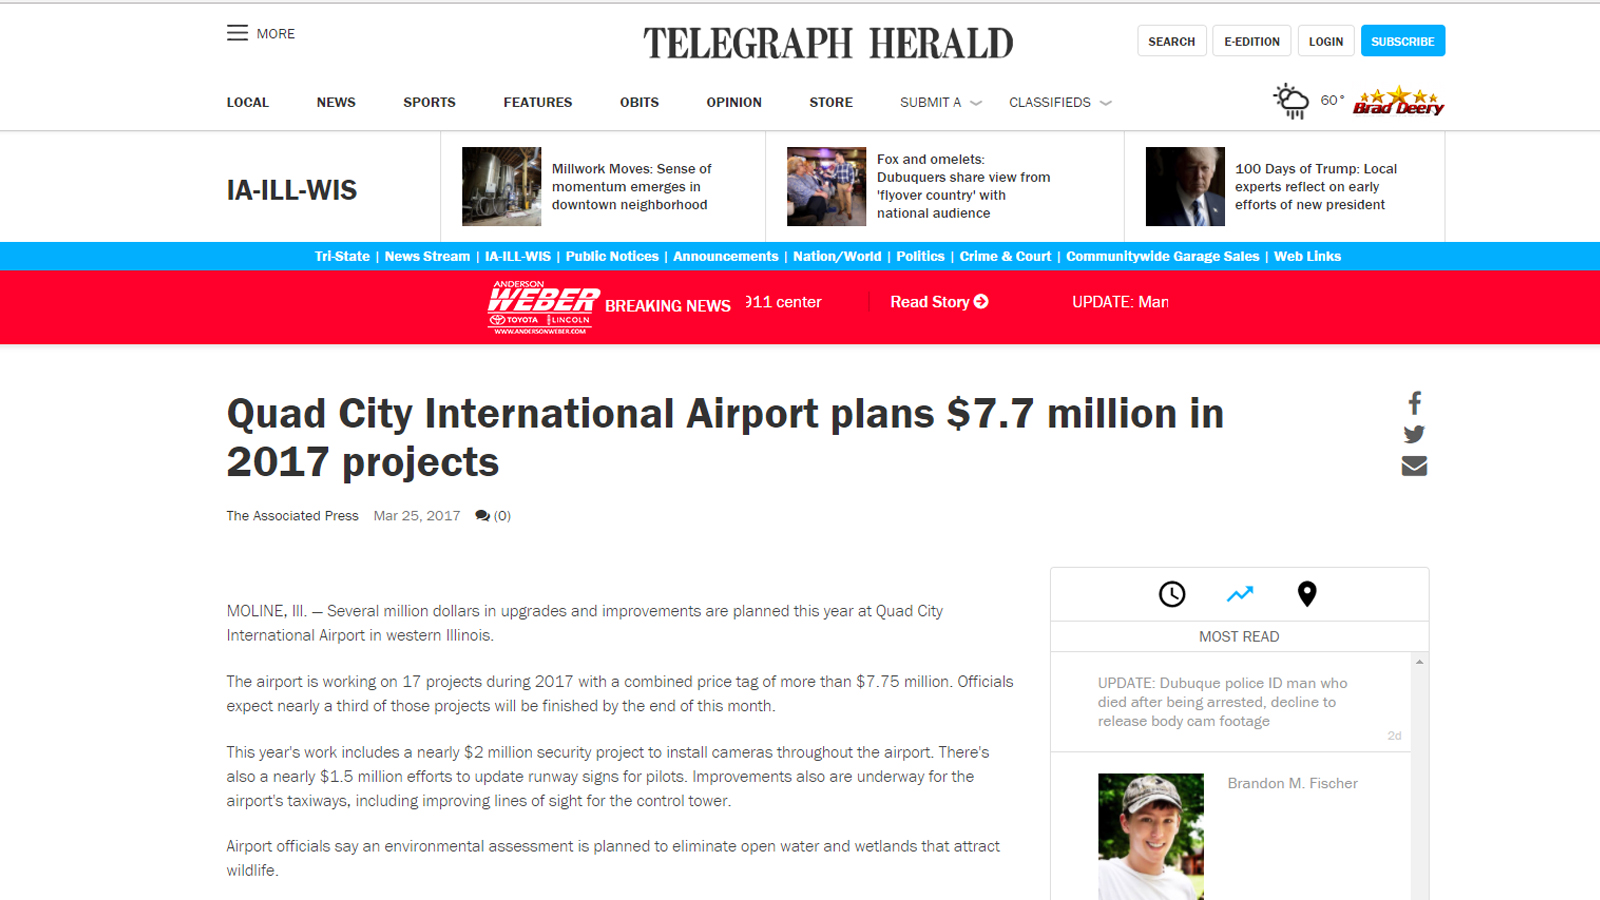 Telegraph Web Page Story - Quad City International Airport plans $7.7 million in 2017 projects